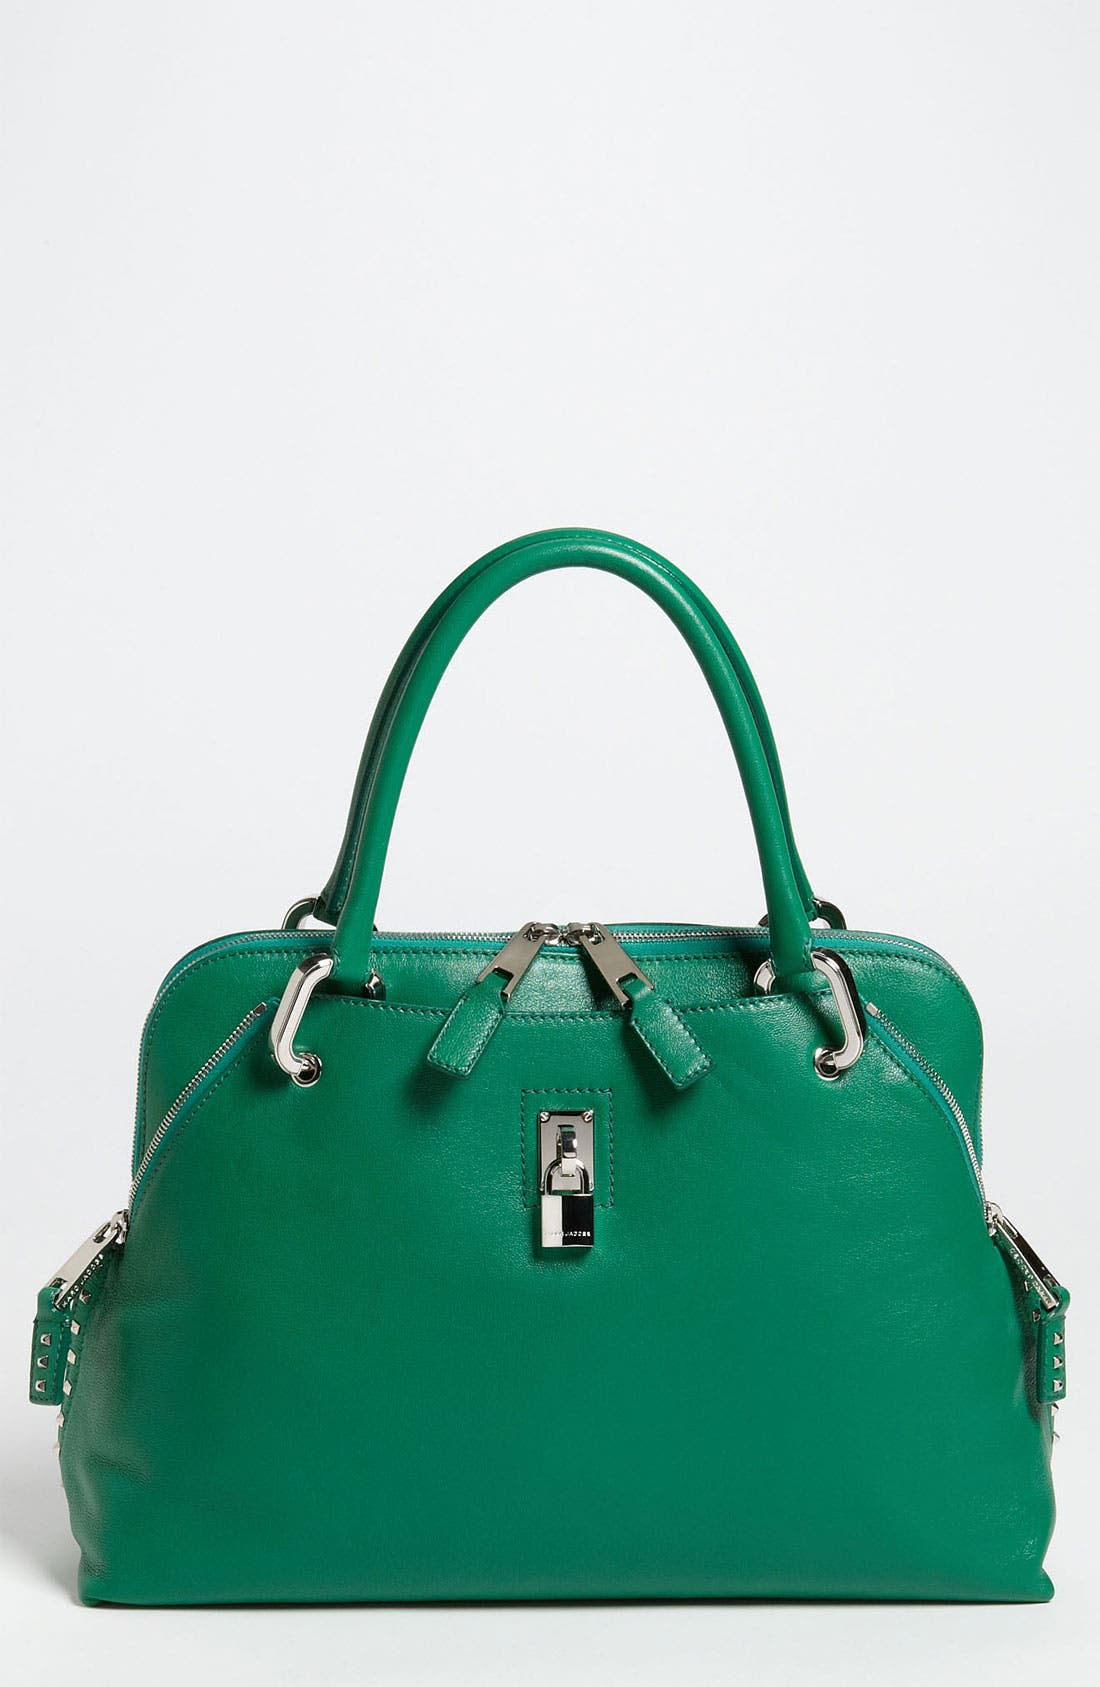 Main Image - MARC JACOBS 'Paradise Rio' Bag